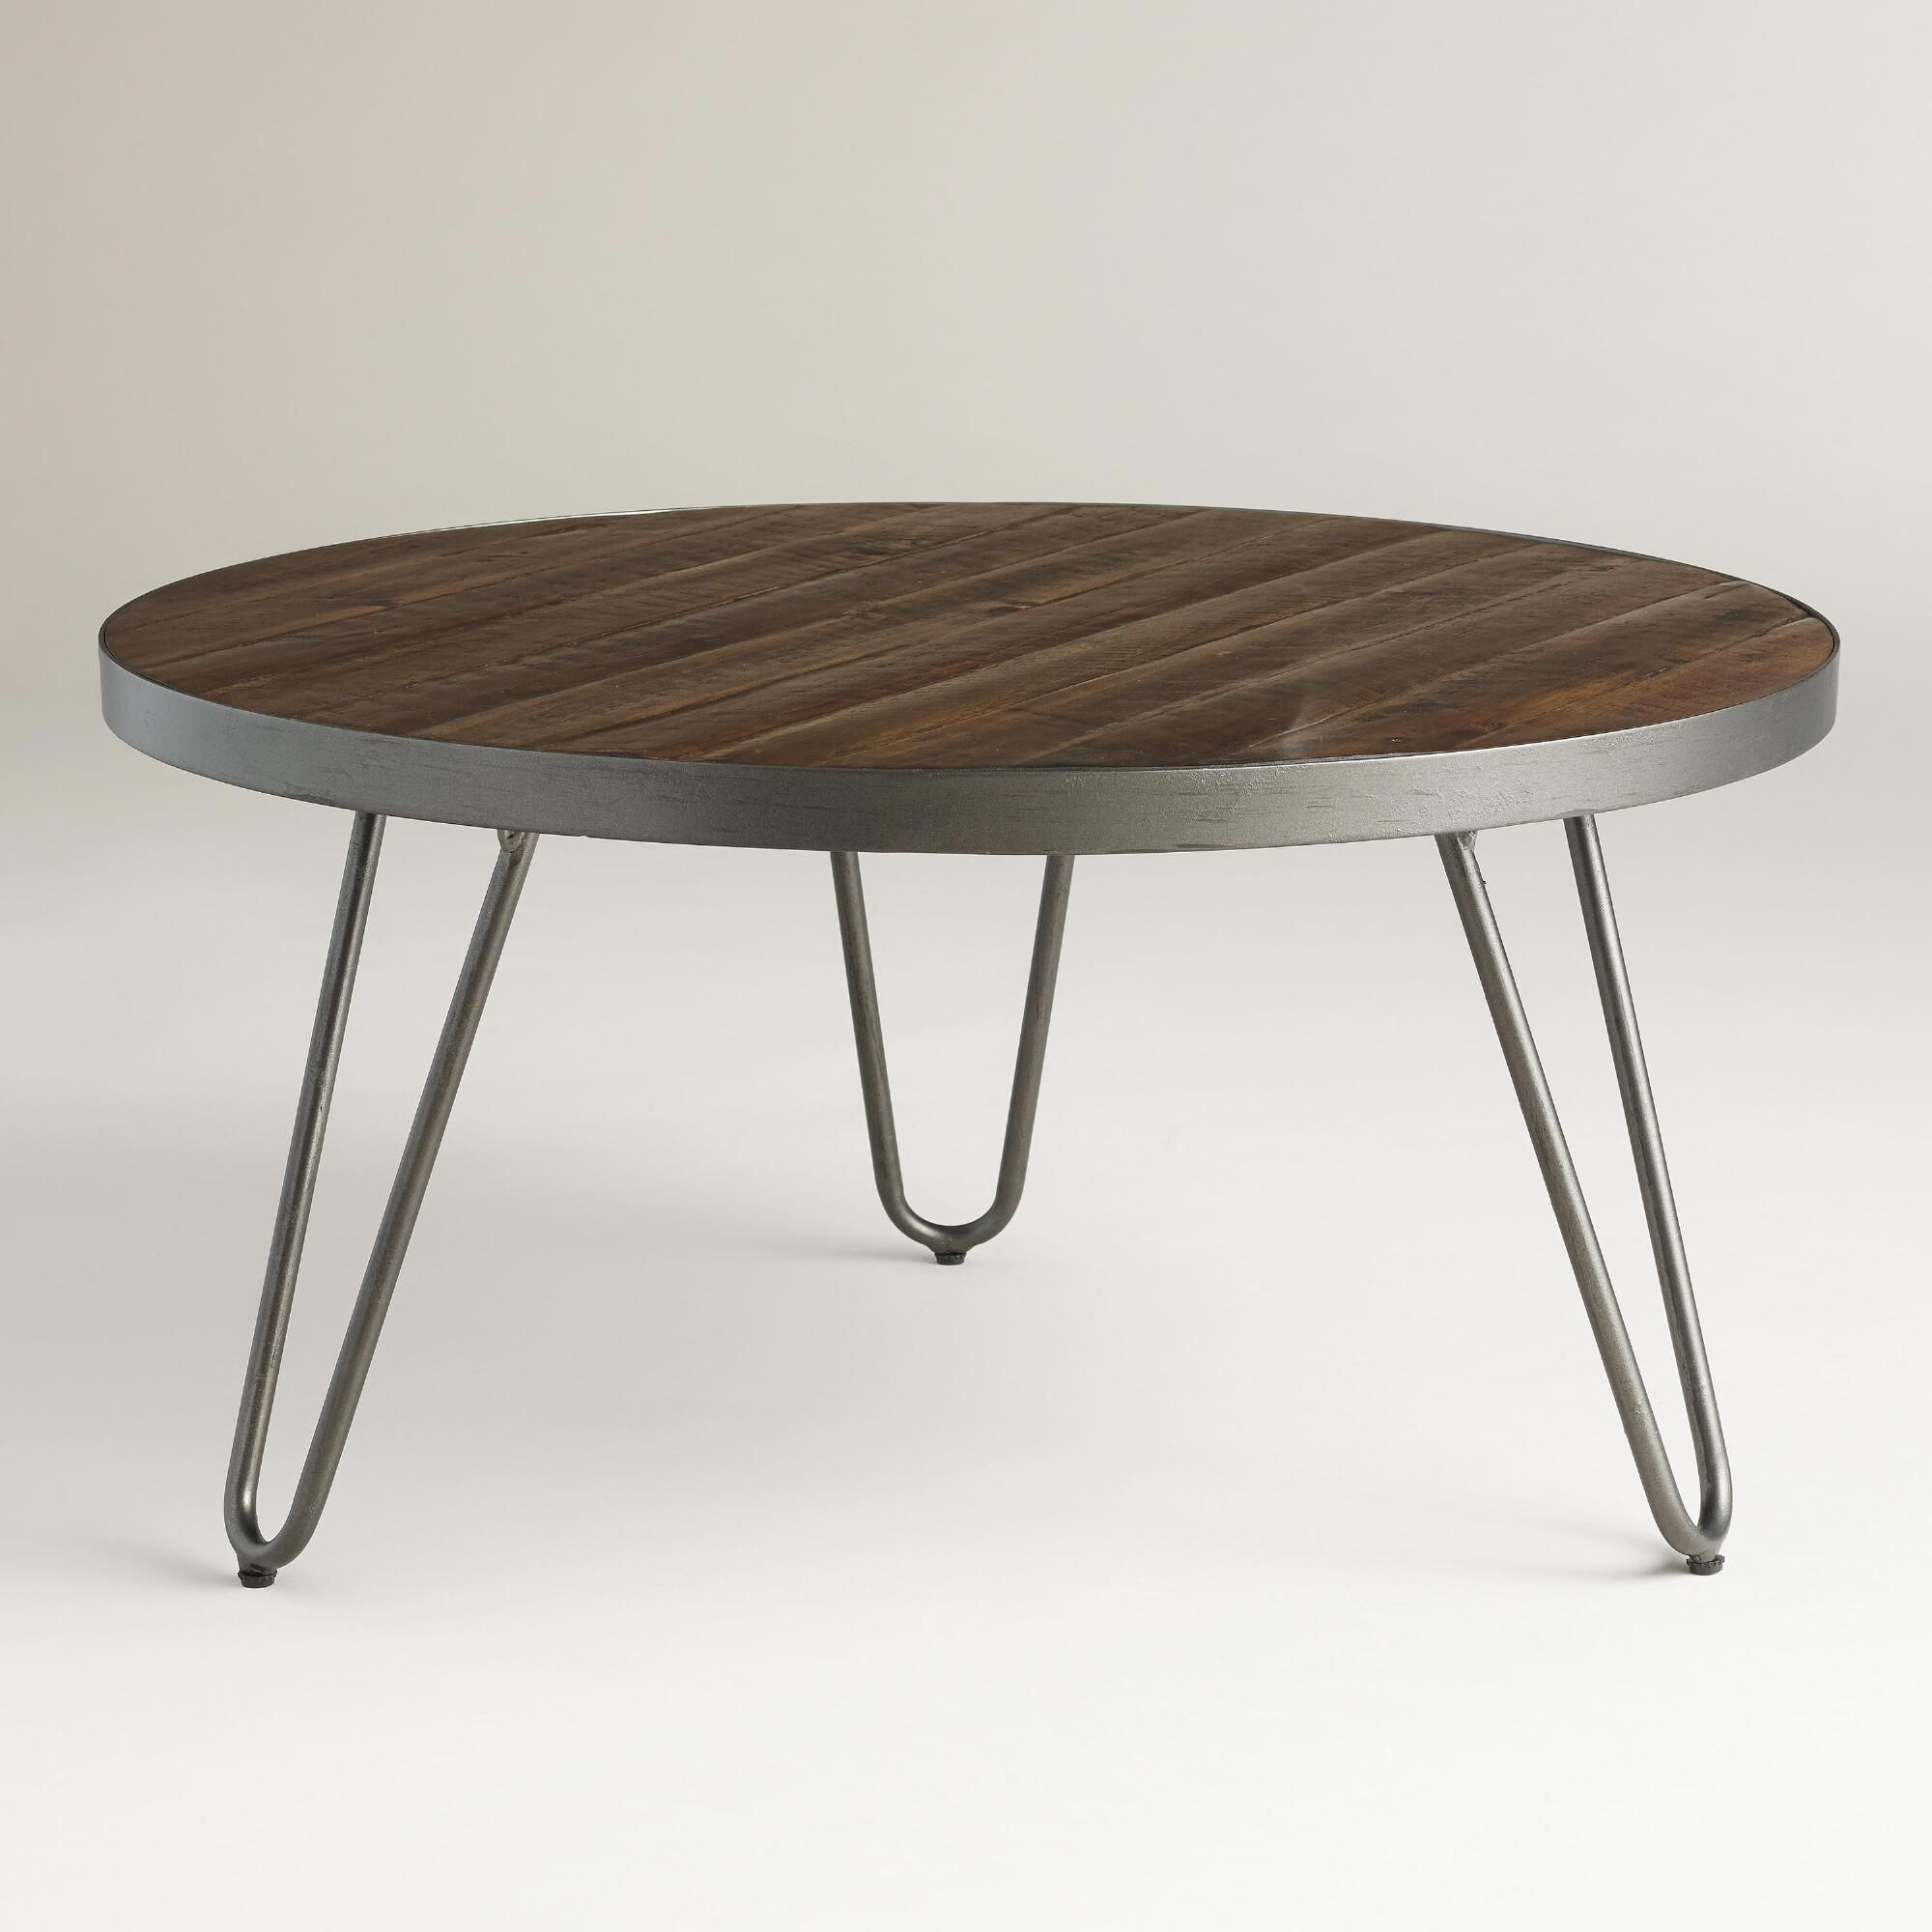 Round Wood Hairpin Coffee Table Round Wood Coffee Table Coffee Table Hairpin Coffee Table